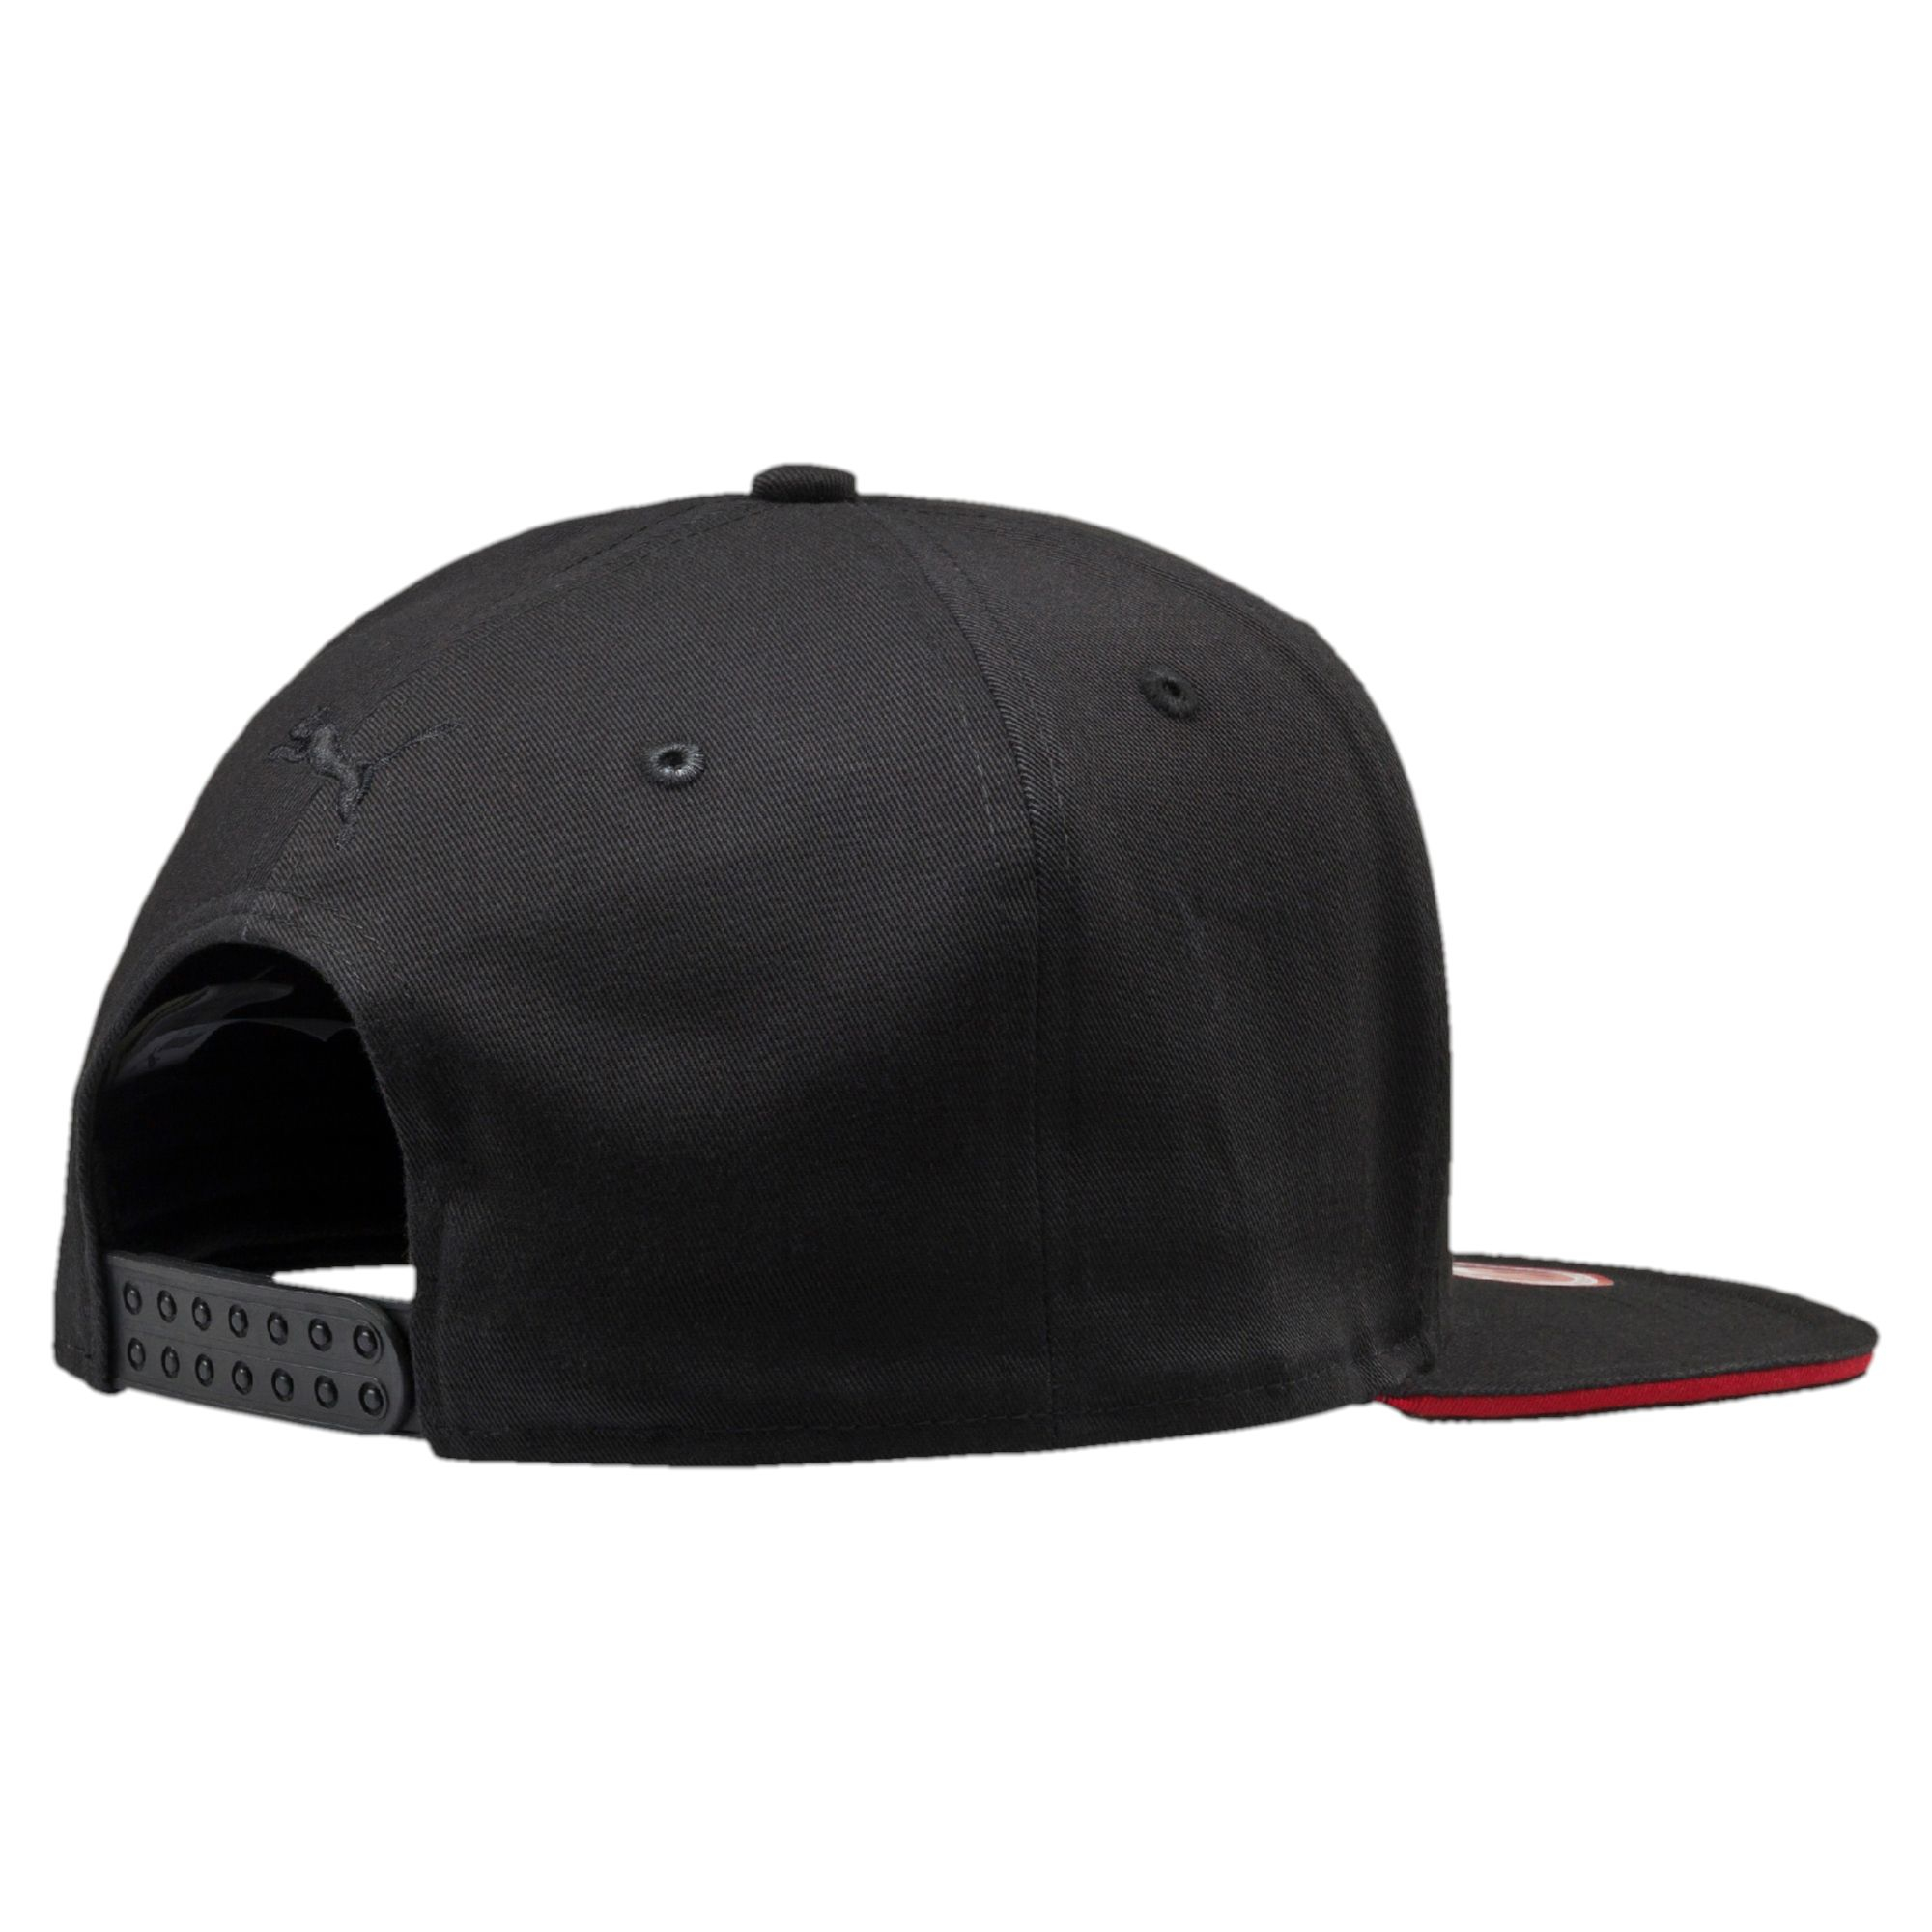 c9ffedf8ce0 Lyst - PUMA Ferrari Flat Out Snapback Hat in Black for Men